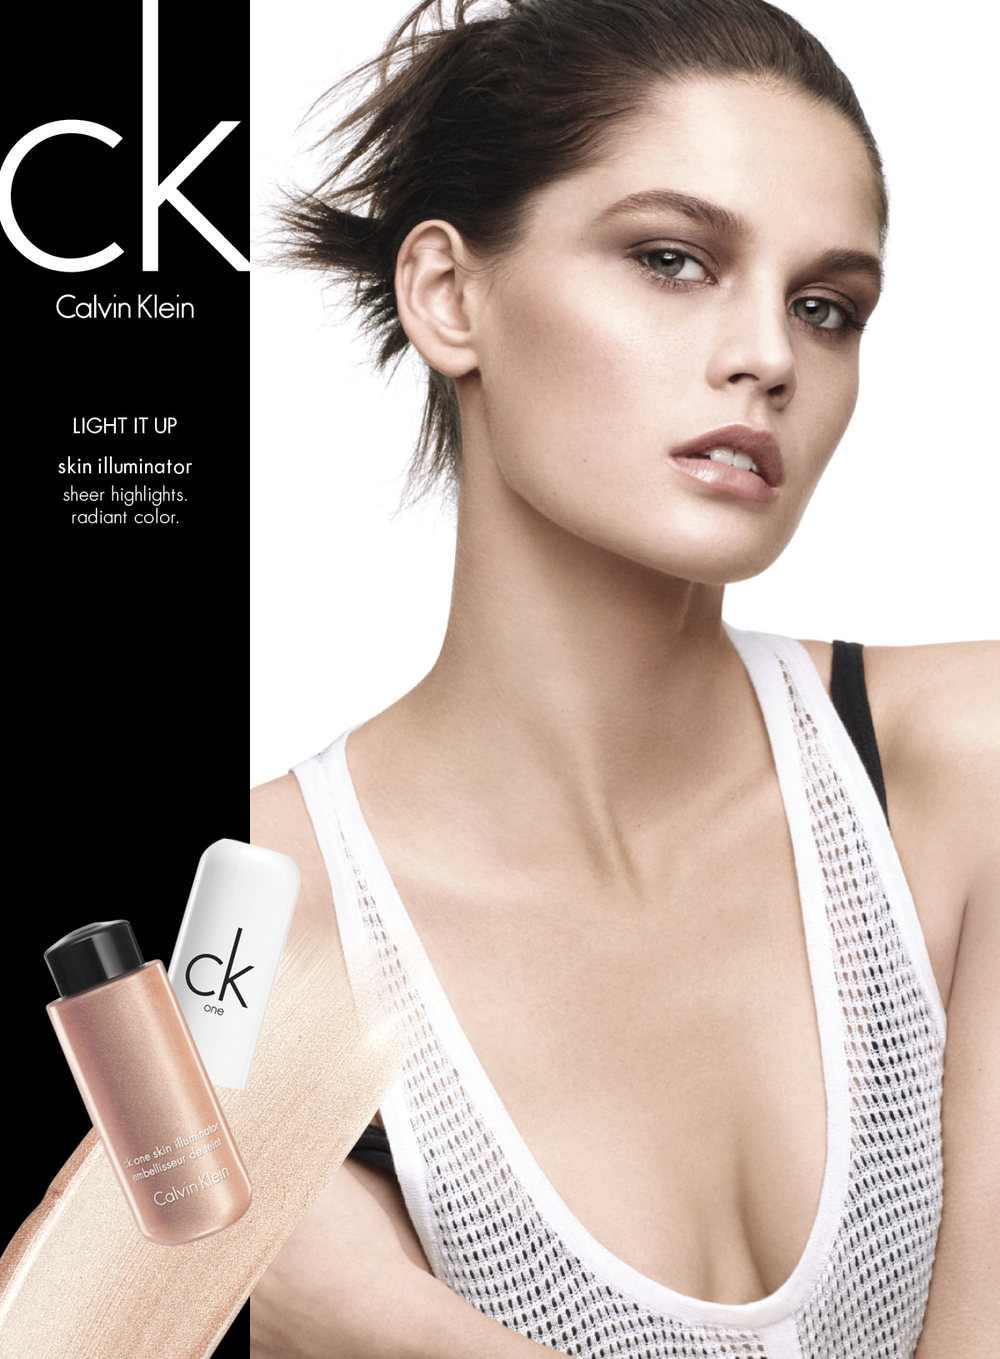 CK COLOR SINGLE PAGE 8%22X10.875%22_SKIN ILLUMINATOR.jpg